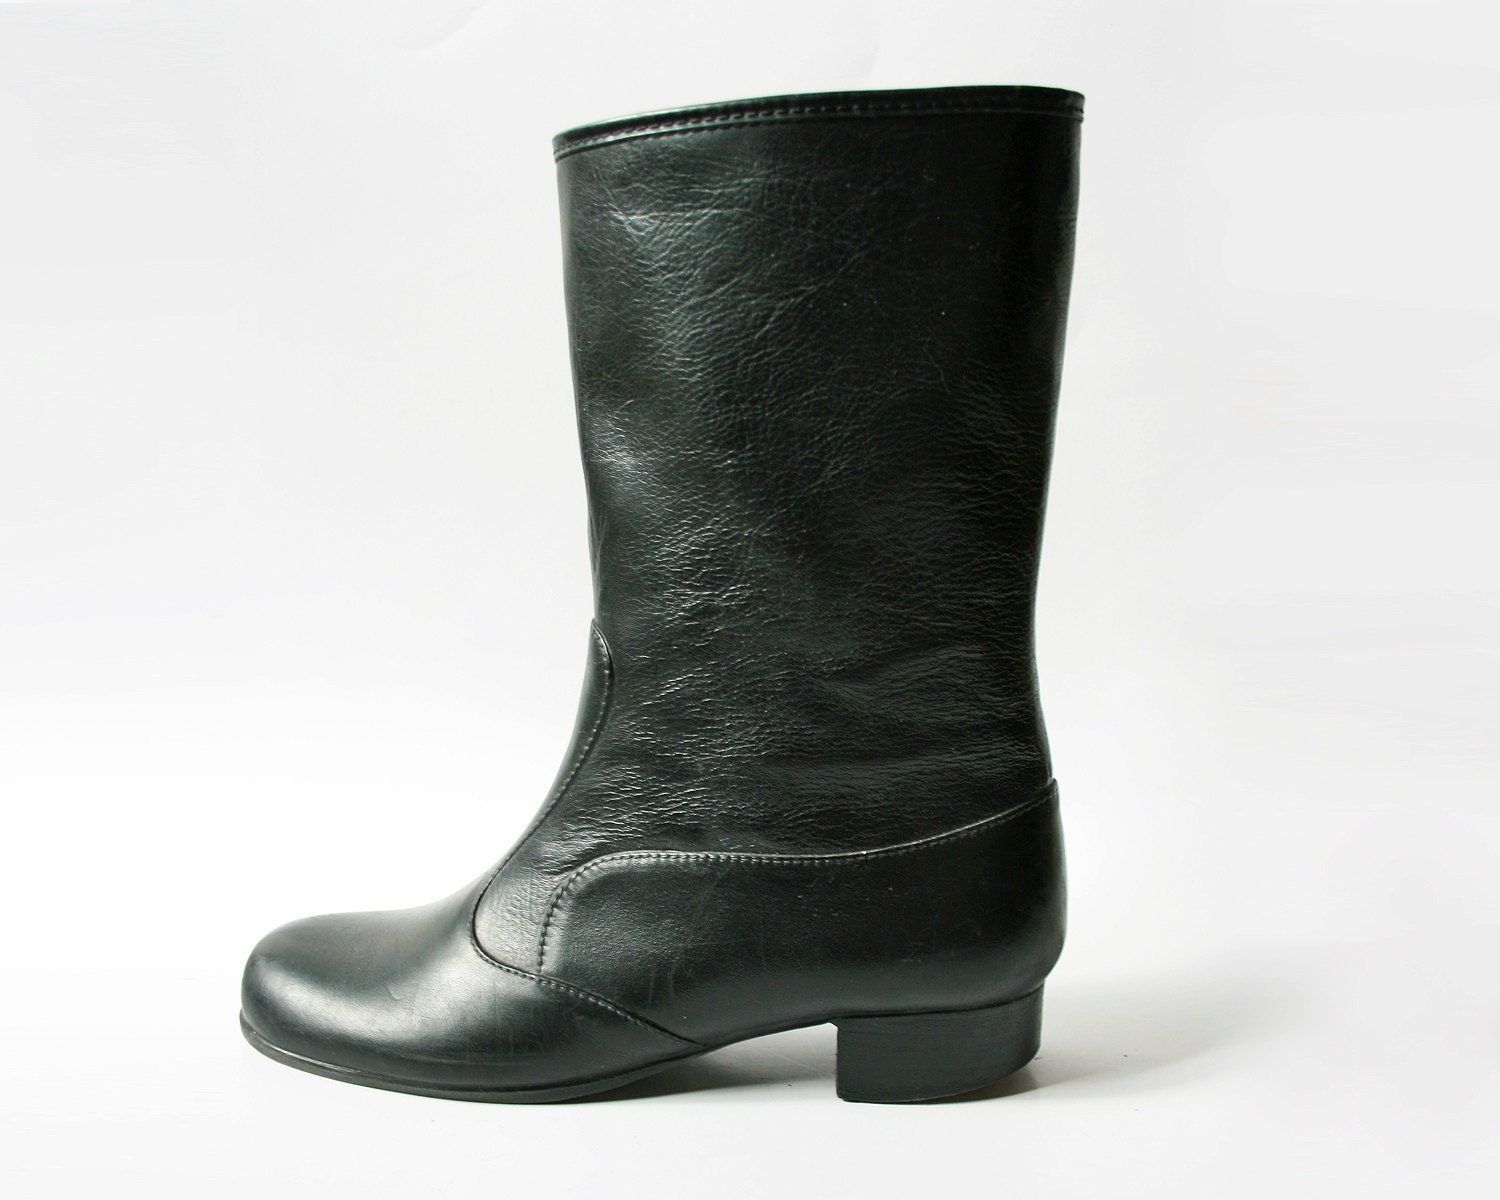 Wonderful Fashion Rain Boots By Sloggers. Waterproof Comfortable And Fun. Made In The USA